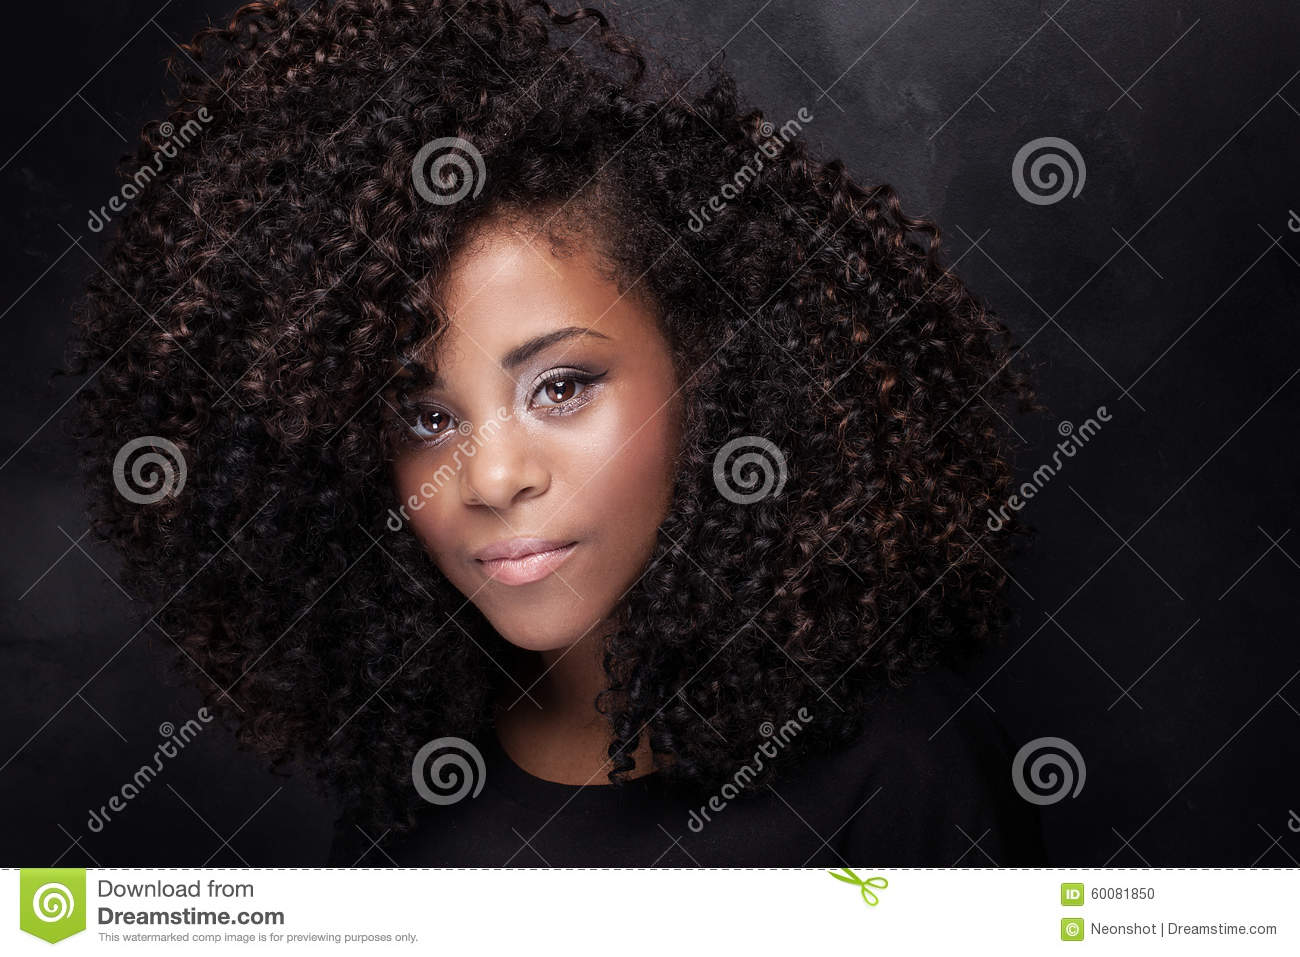 Beauty Portrait Of Young Girl With Afro  Stock Photo - Image